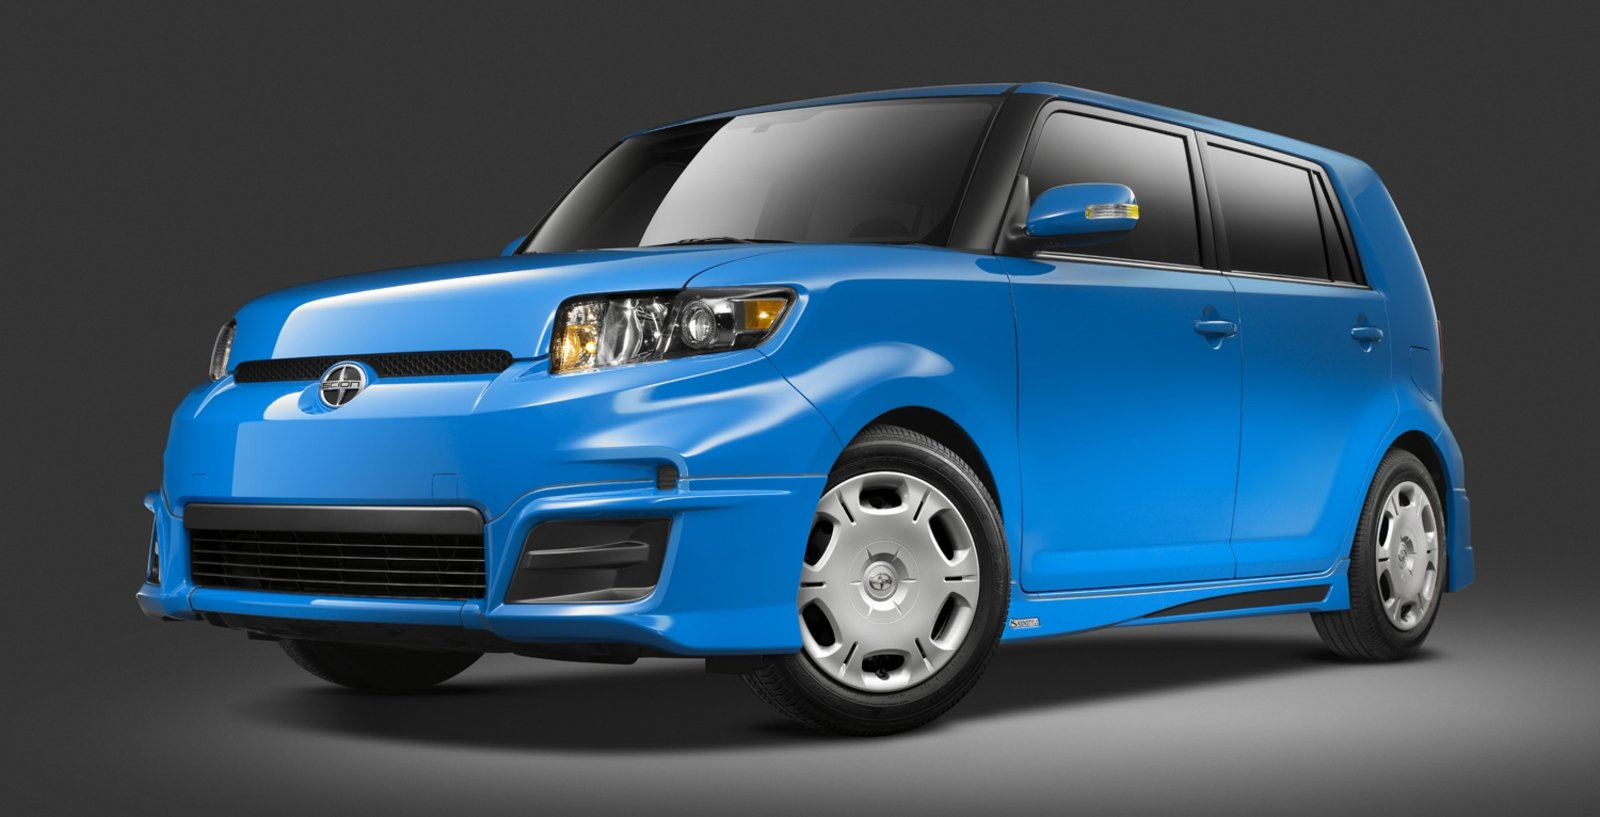 2011 scion xb release series 8 0 review top speed. Black Bedroom Furniture Sets. Home Design Ideas